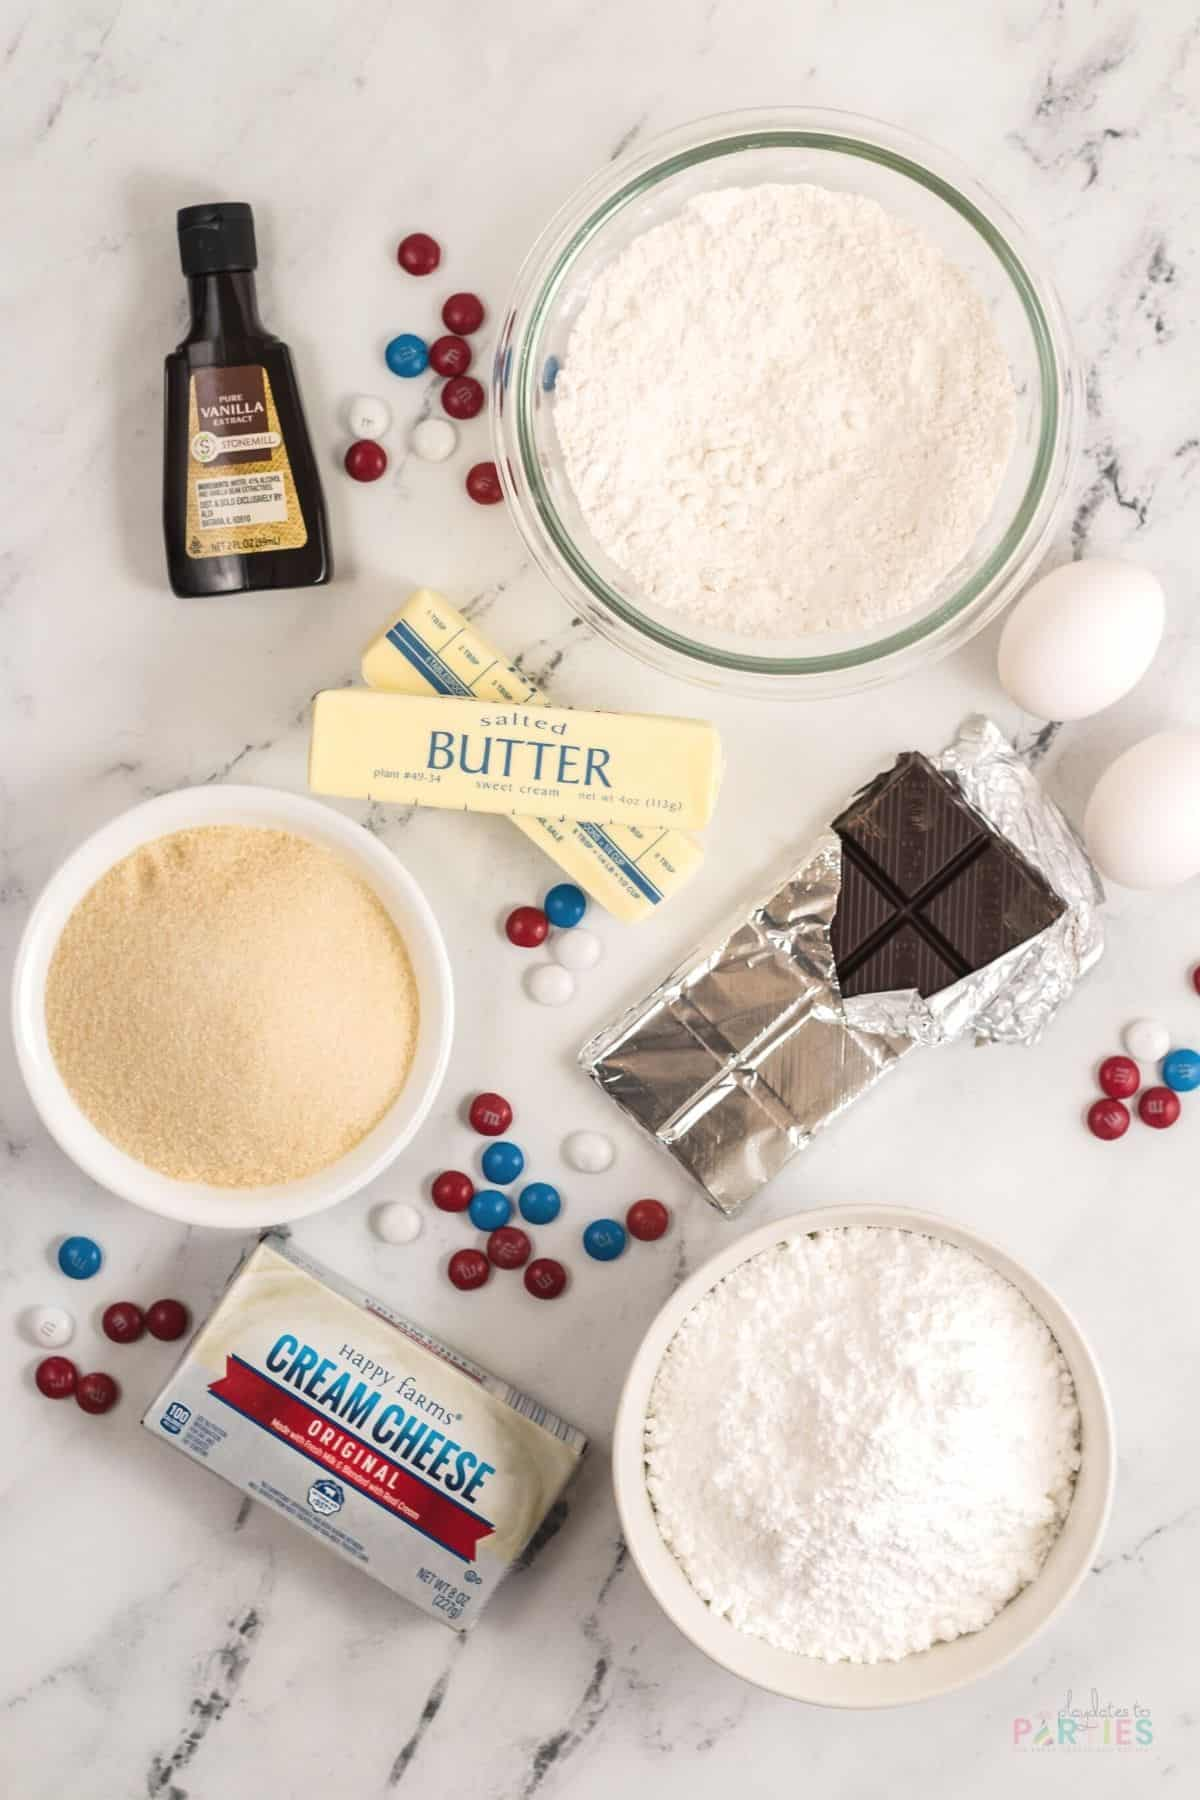 Ingredients for July 4th brownie pizza on a marble surface: vanilla extract, flour, eggs, butter, sugar, baking chocolate, cream cheese, powdered sugar, and candies